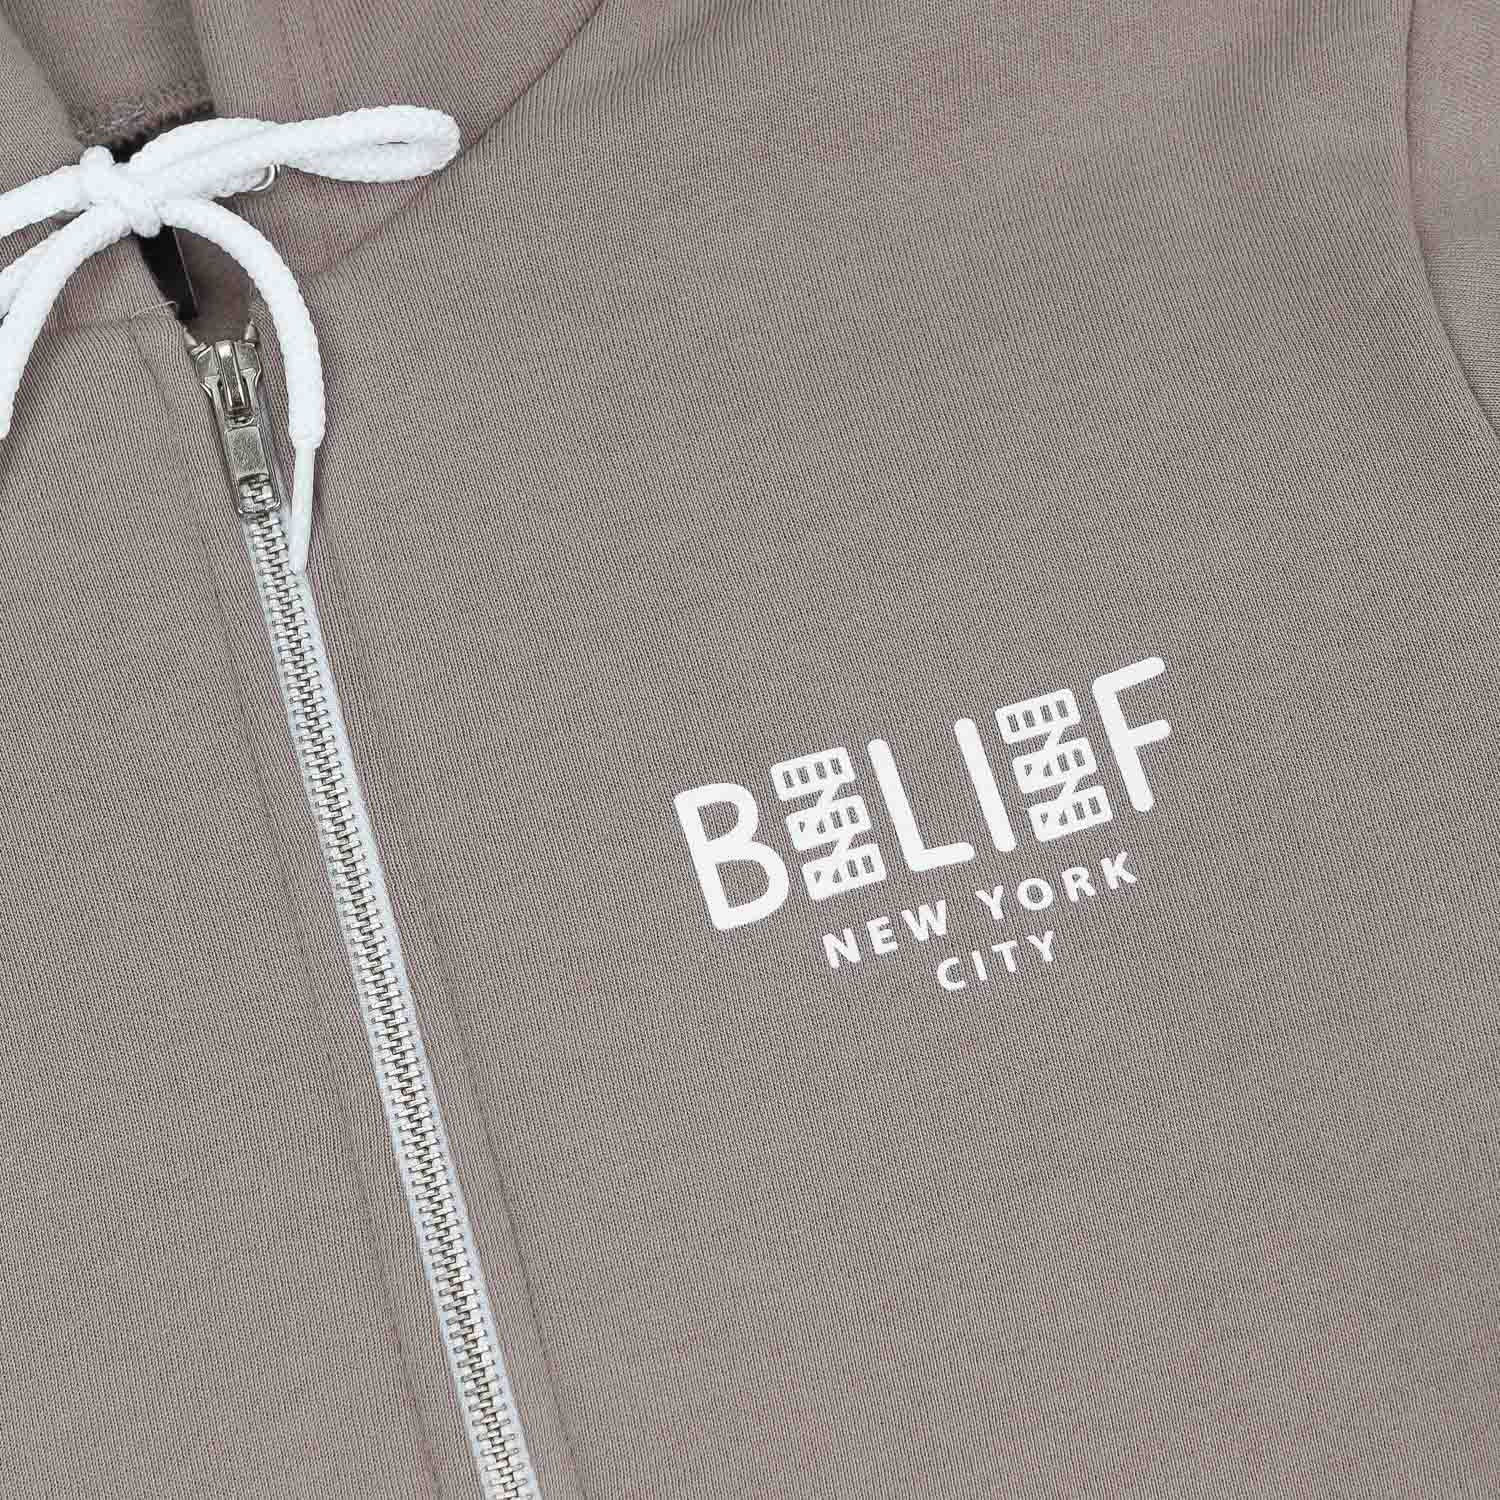 Belief City Block Zip Hooded Sweatshirt - Pewter